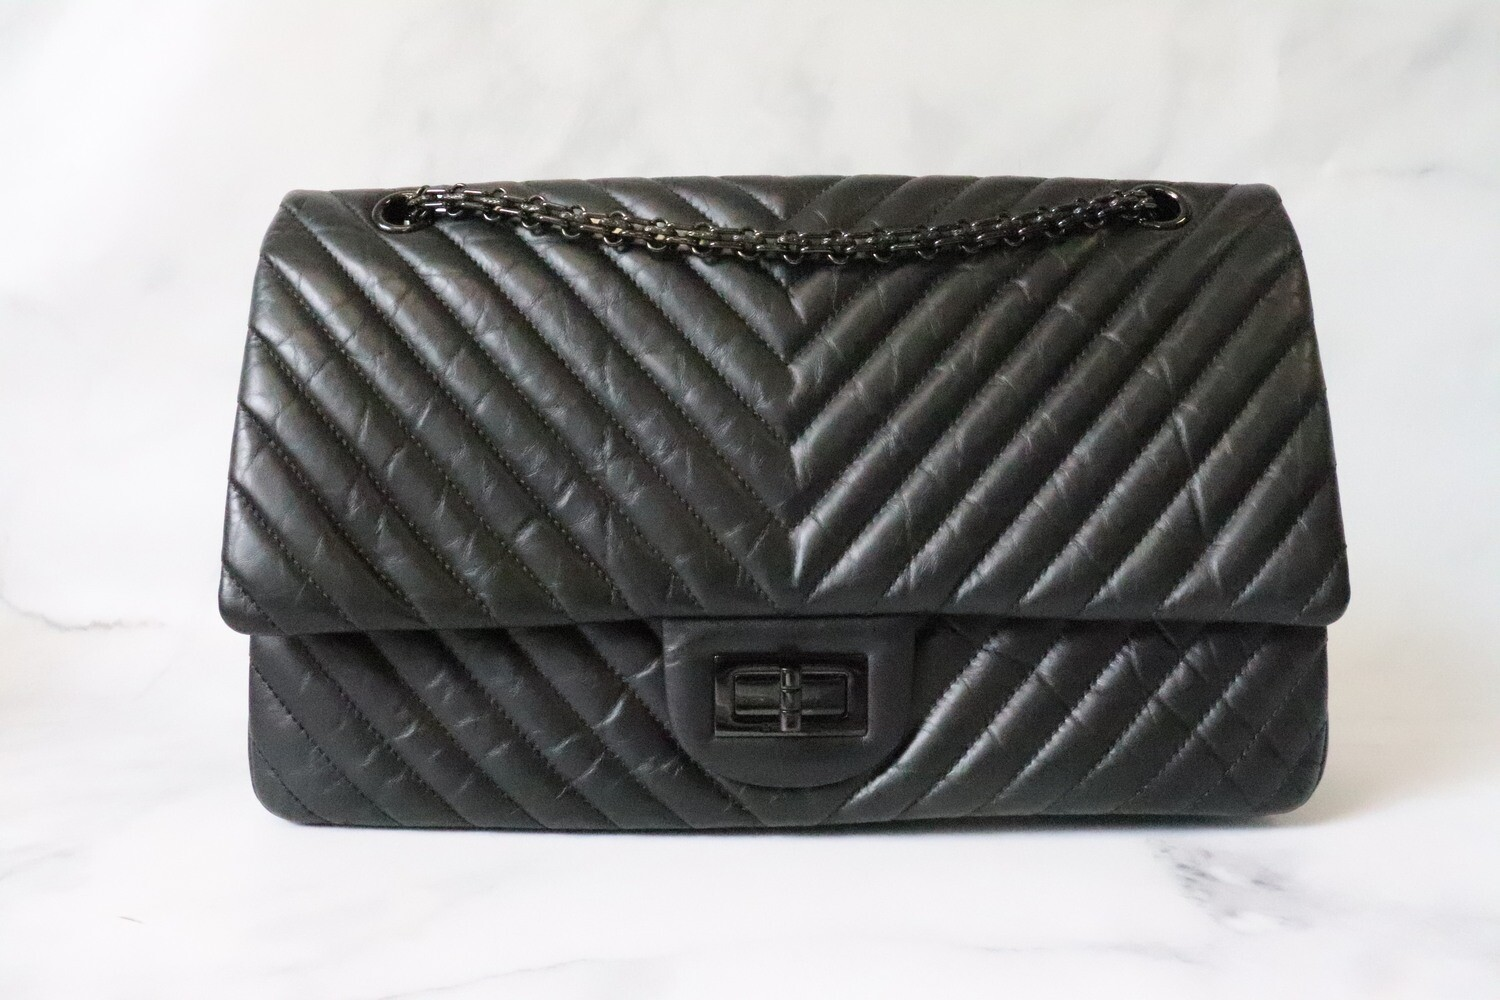 Chanel Reissue 227 So Black Crumpled Caflskin Leather, So Black Hardware, Preowned in Dustbag